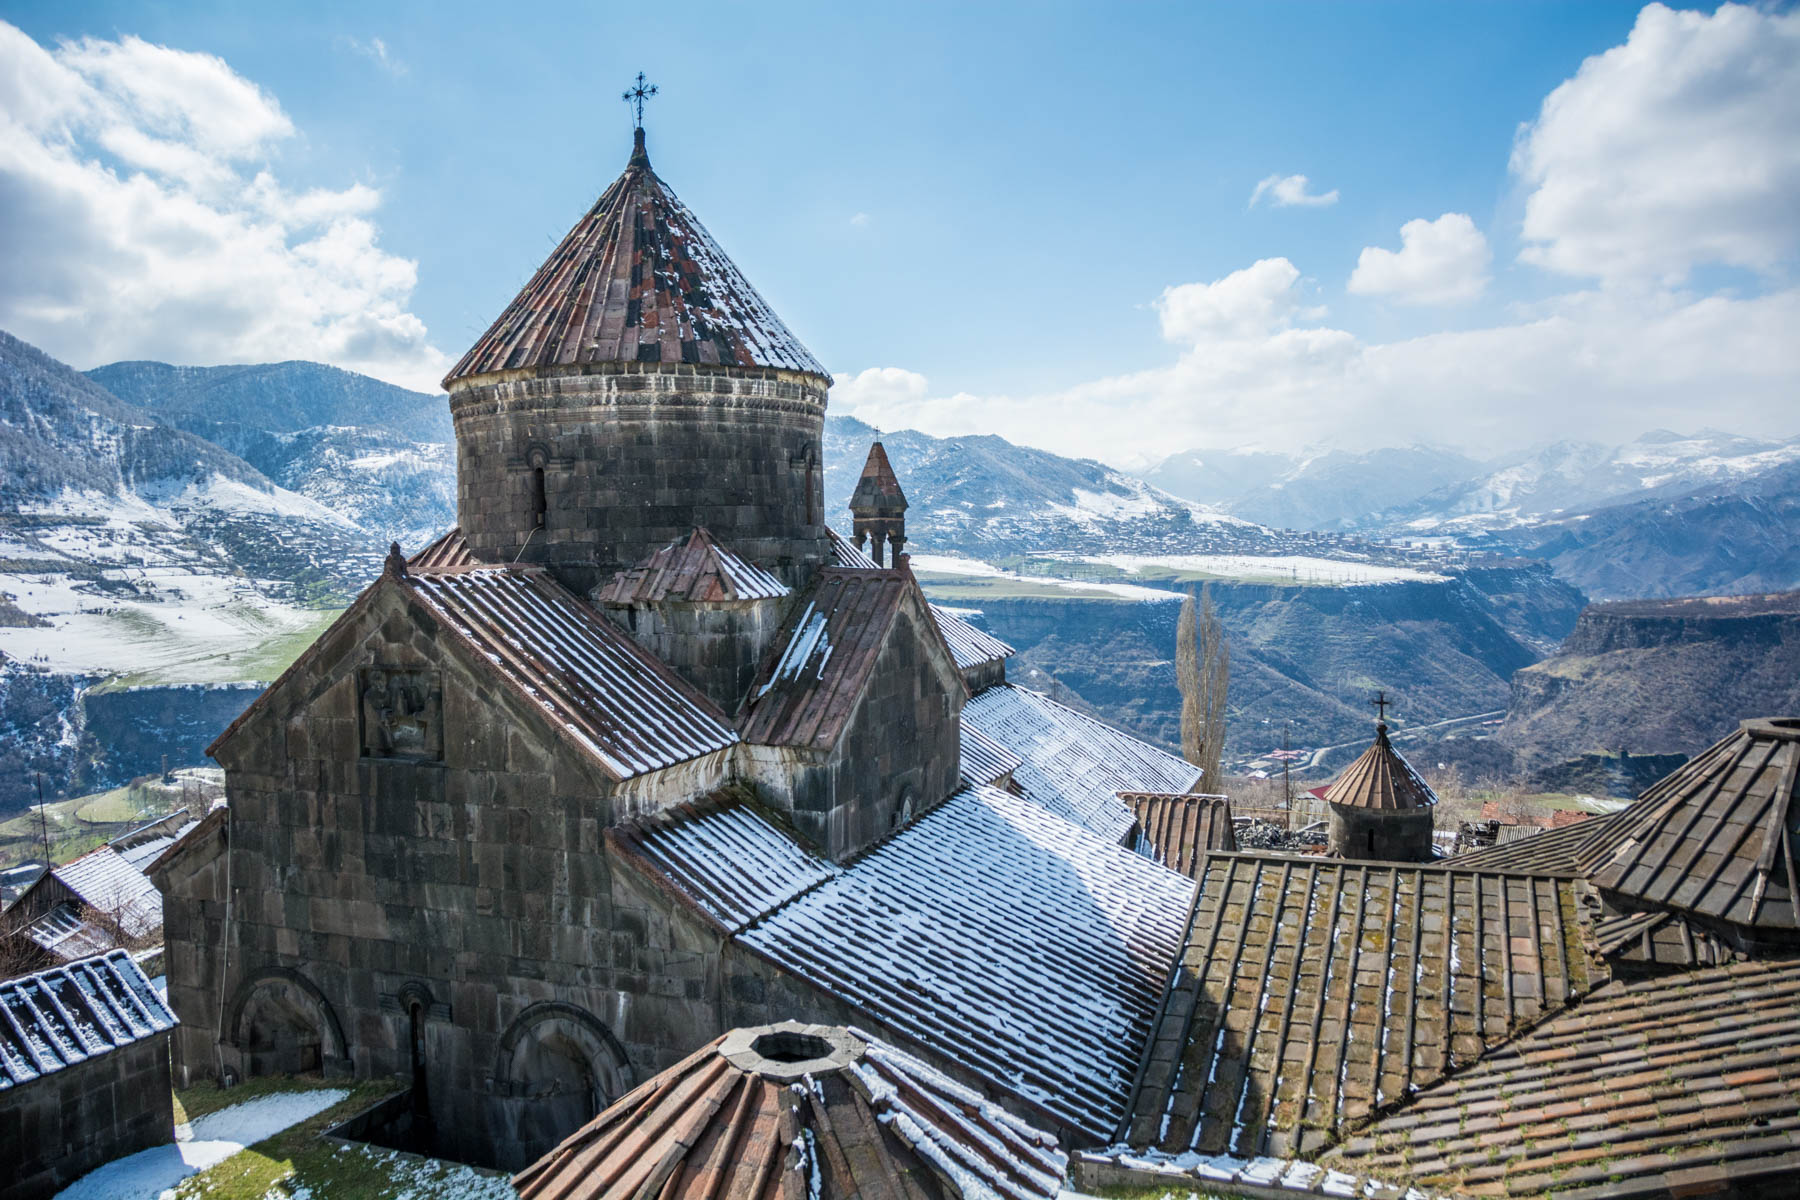 Why visit Armenia: The view from the bell tower of Haghpat monastery in Alaverdi, Armenia.